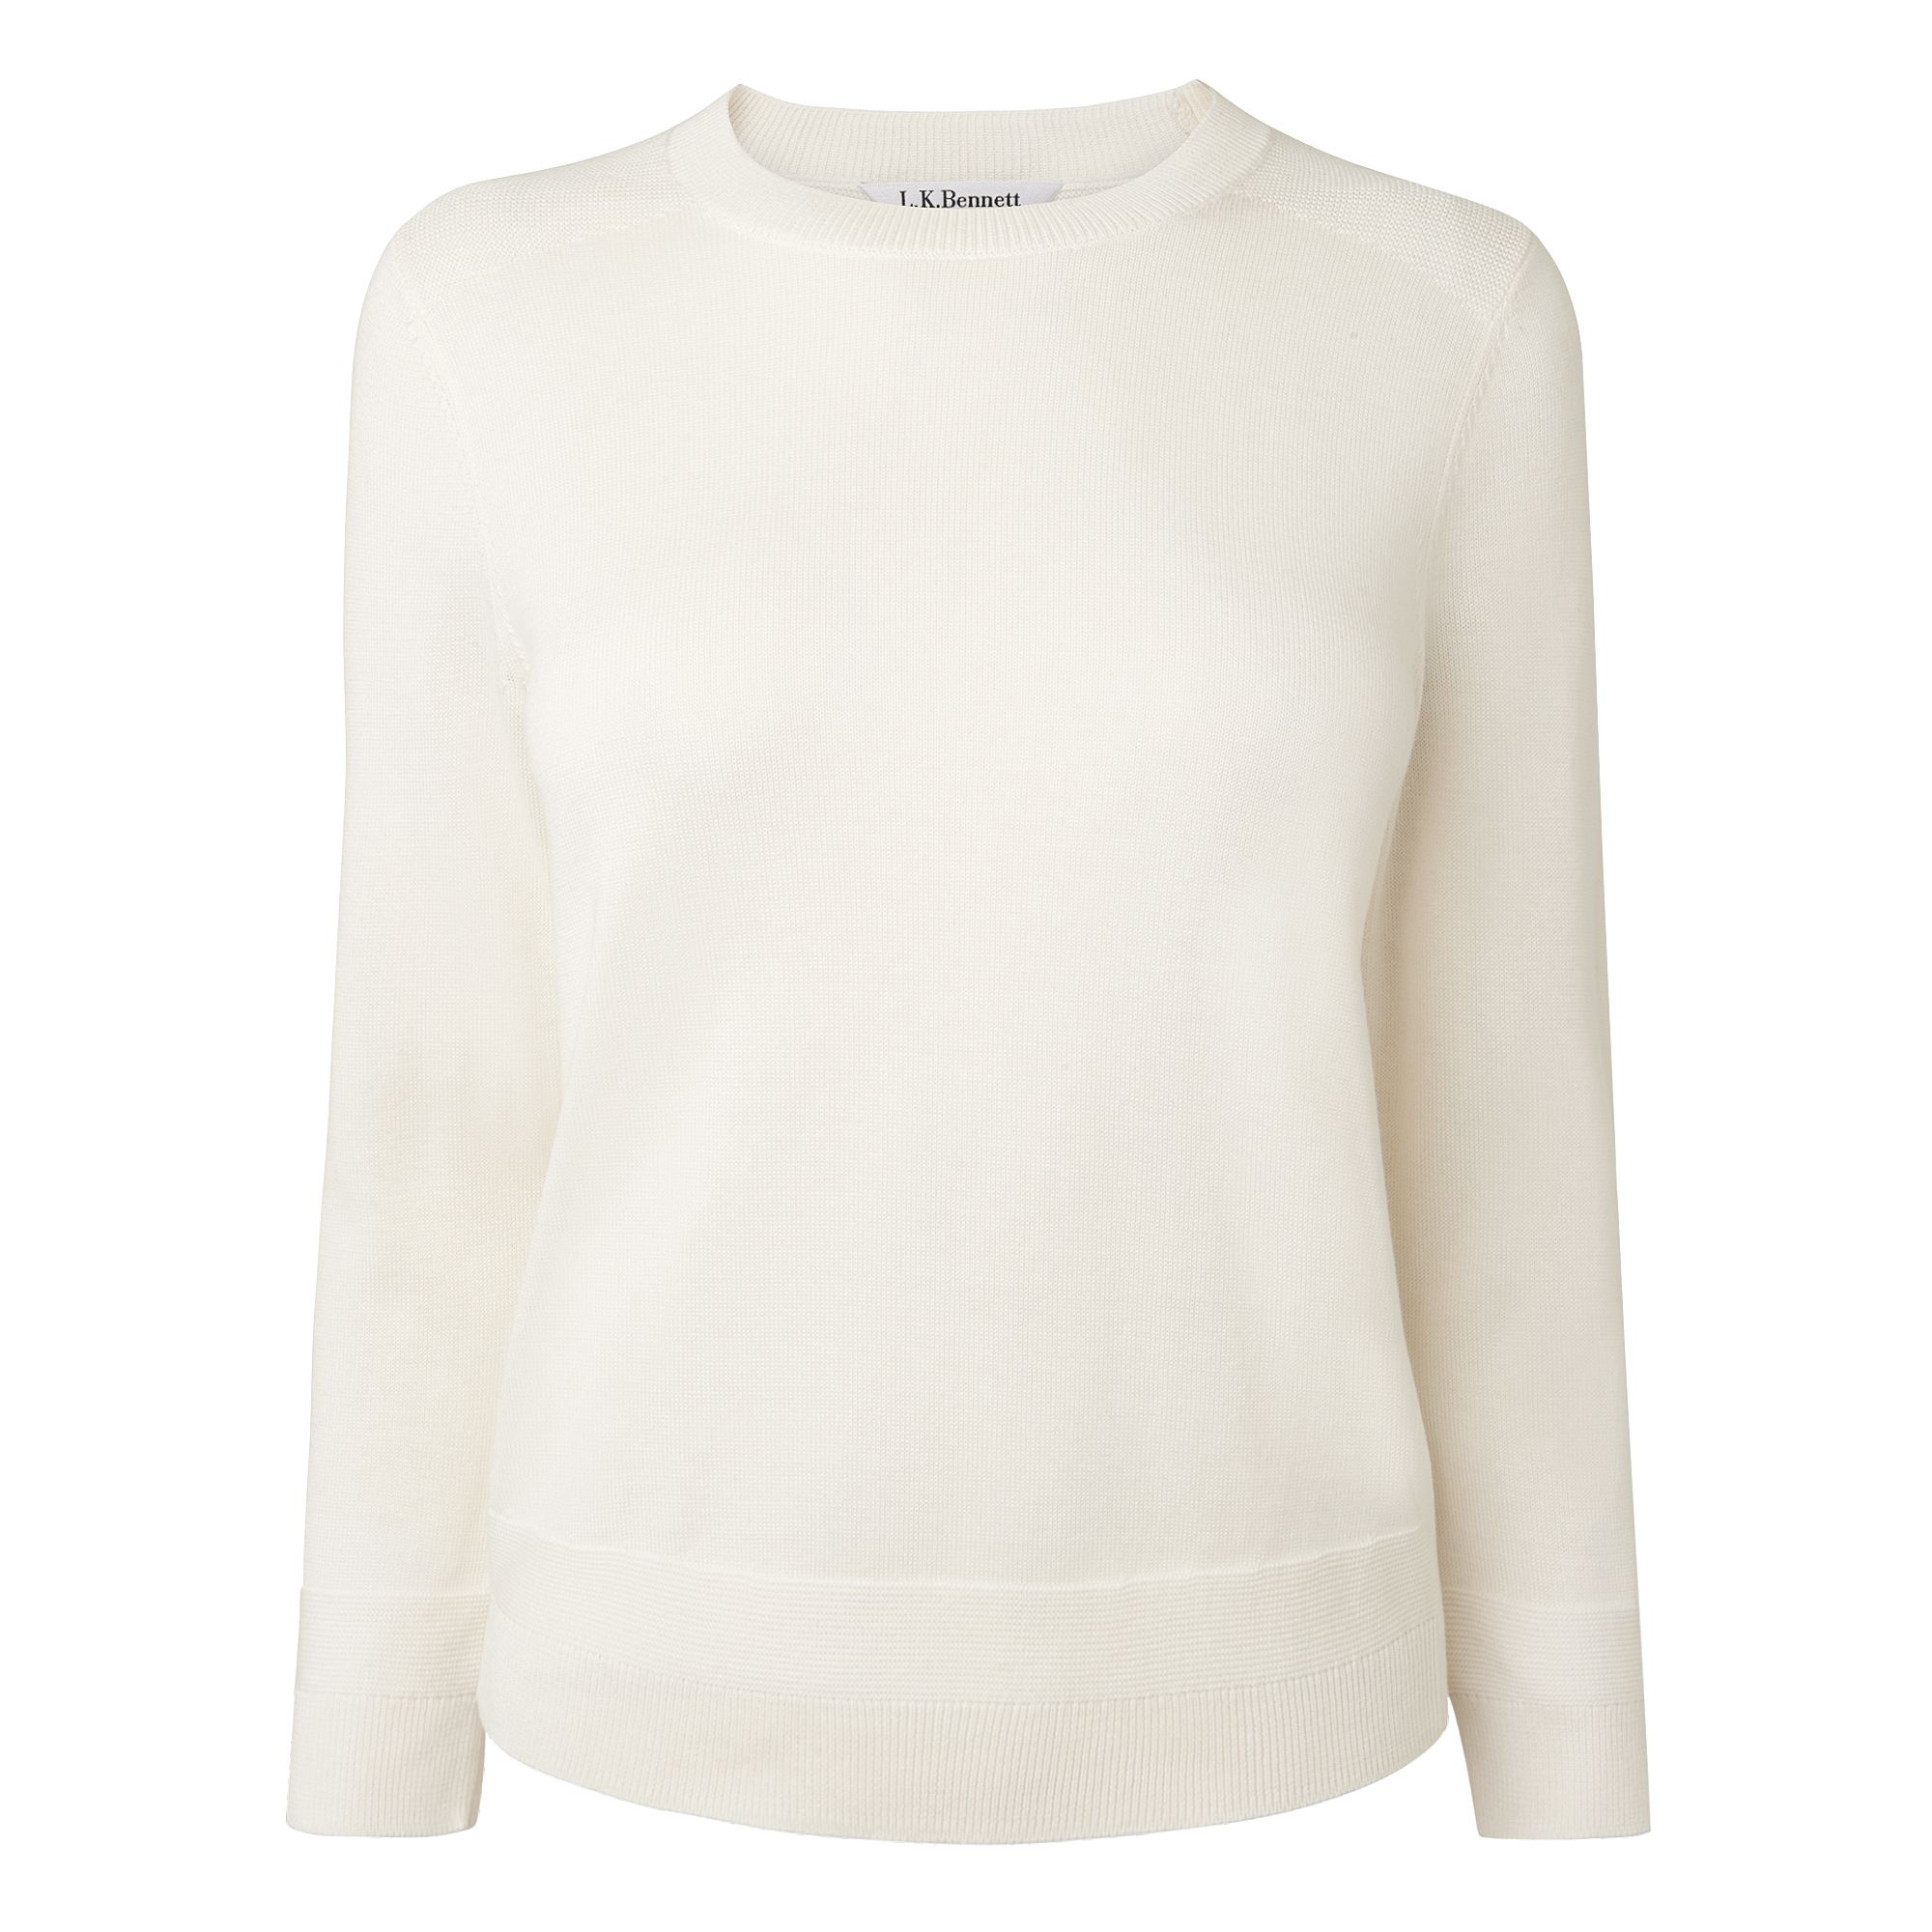 L.K. Bennett Maisy Silk Cotton Knitted Tops, Cream